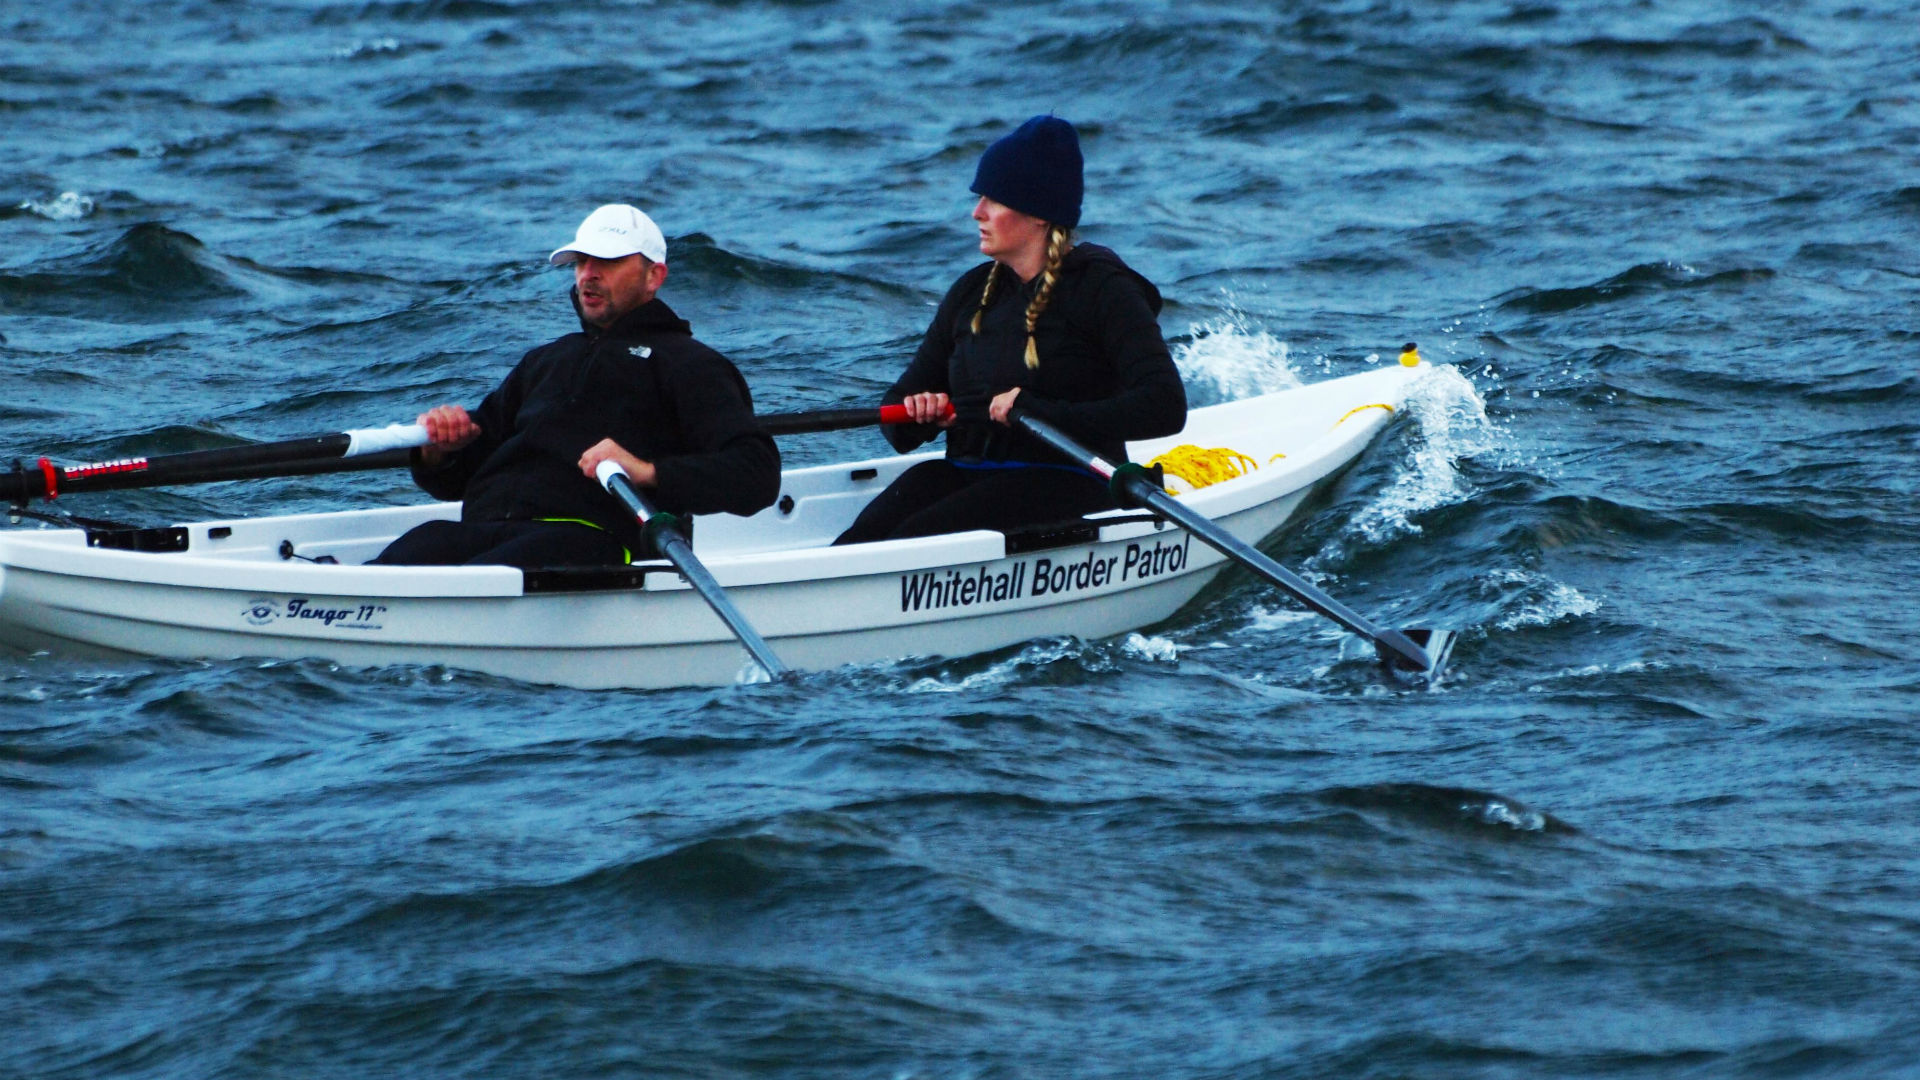 Whitehall - Rowing-and-Sail-Tango-17-Rowboat-Diana-Lesieur-Peter-Vogel-Race-To-Alaska